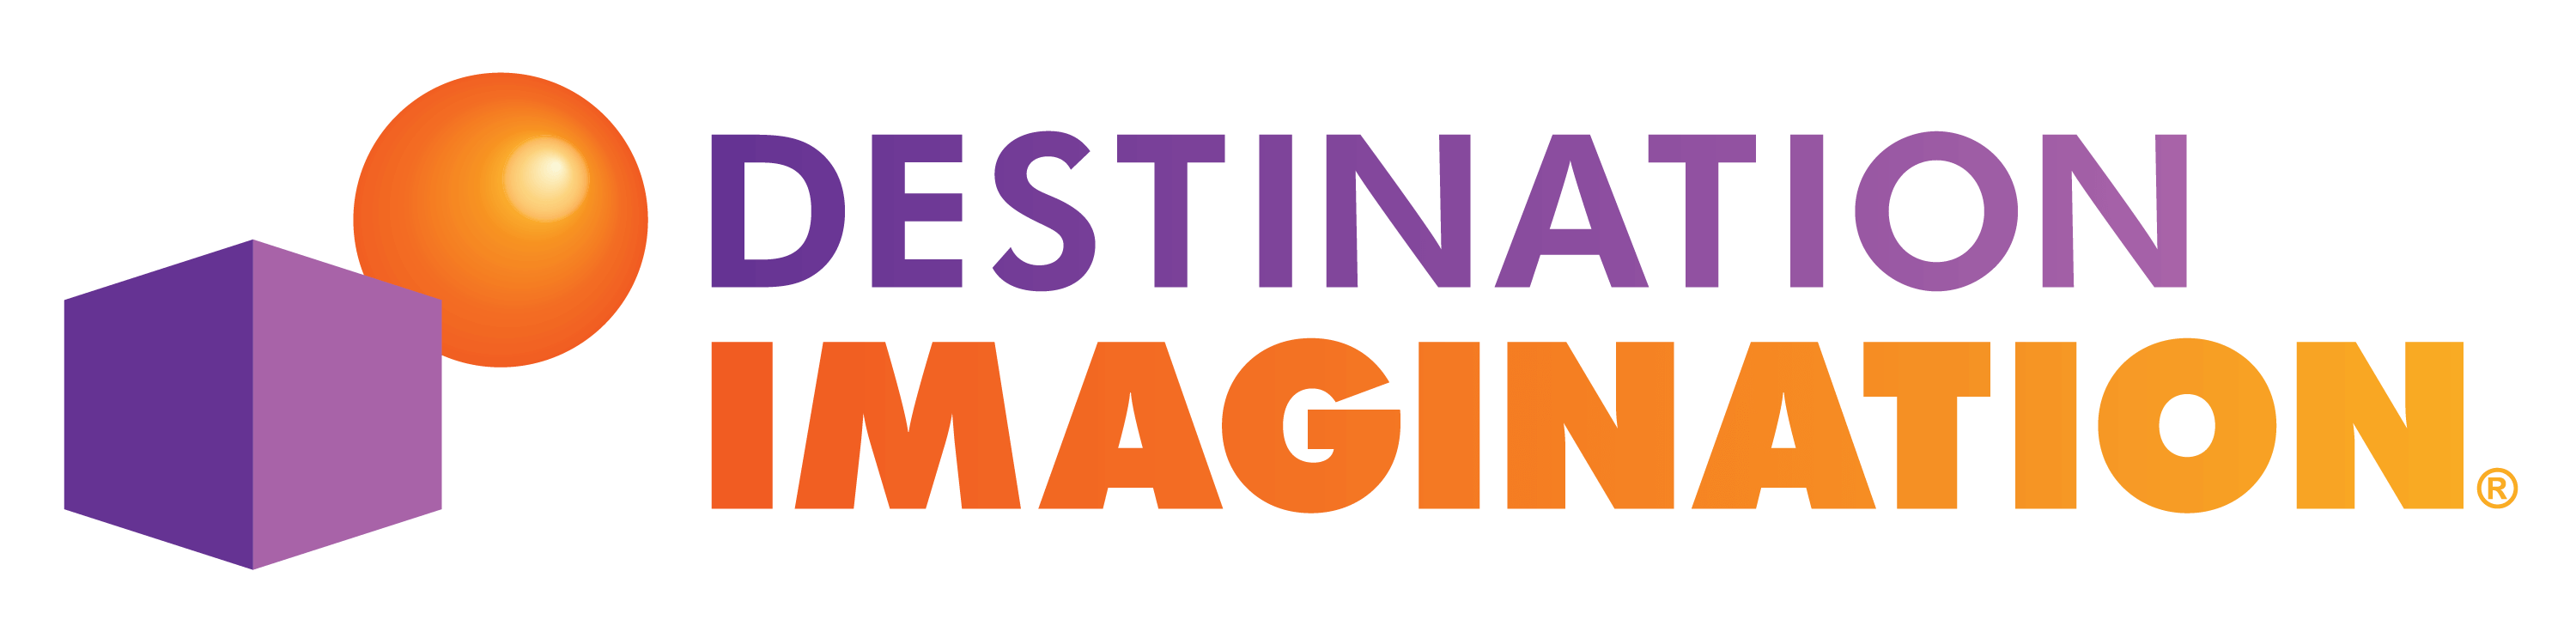 2018 Destination Imagination